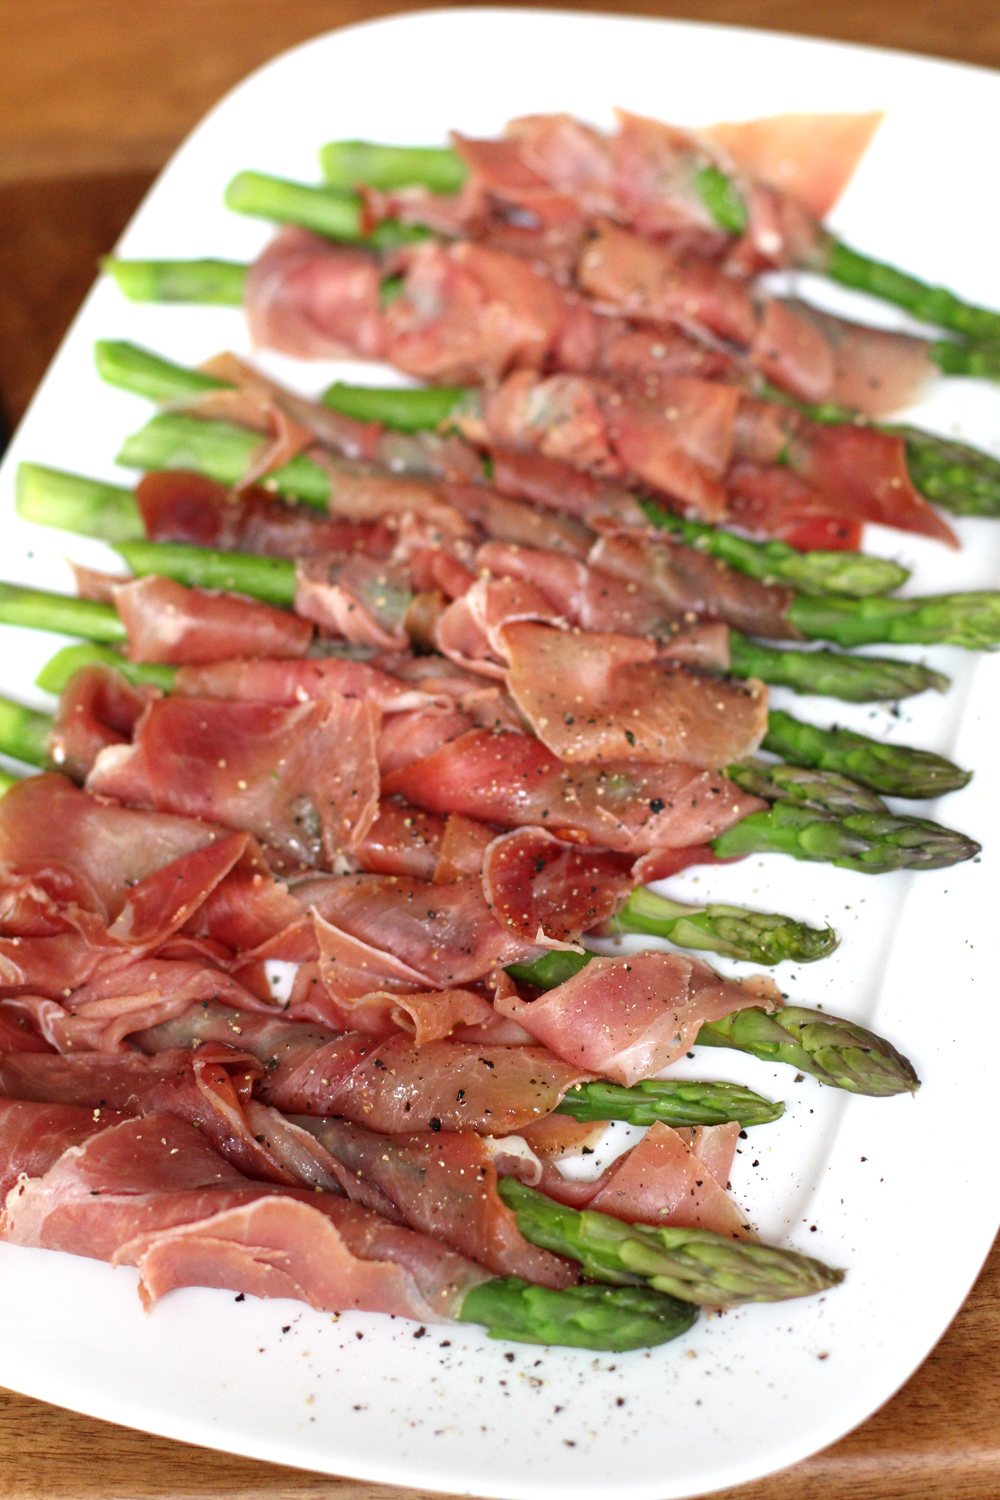 British asparagus wrapped in Parma ham - UK lifestyle blog